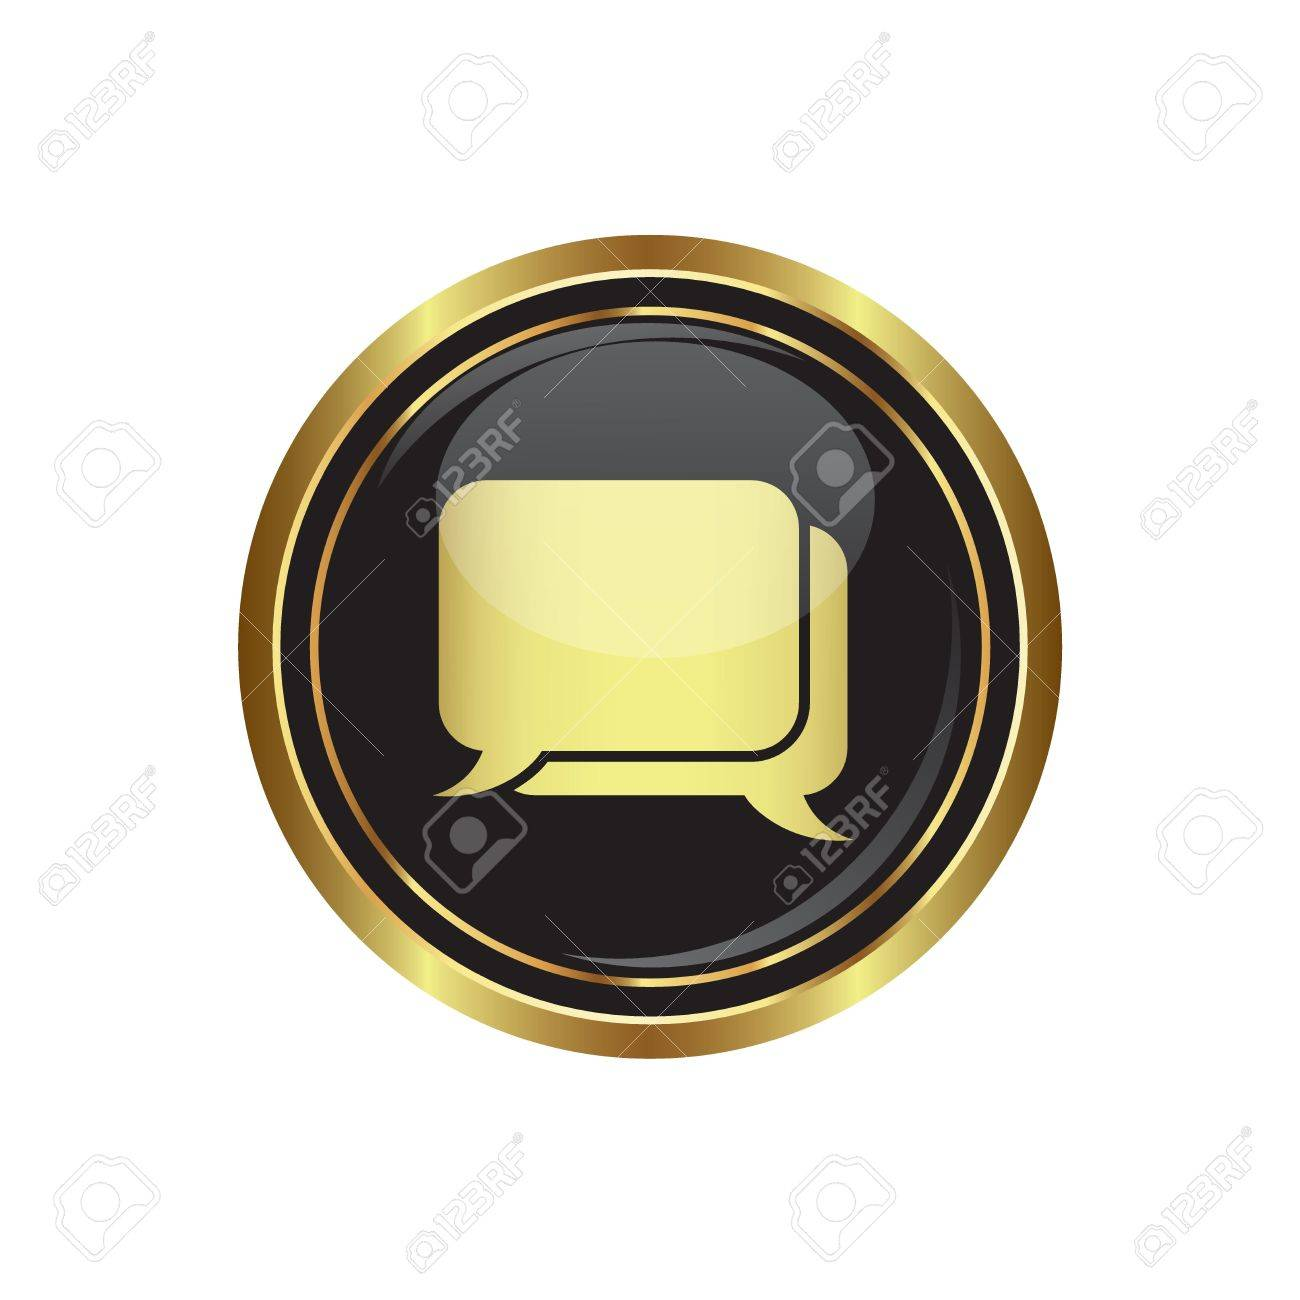 conversation box on black with gold button illustration Stock Vector - 18700011